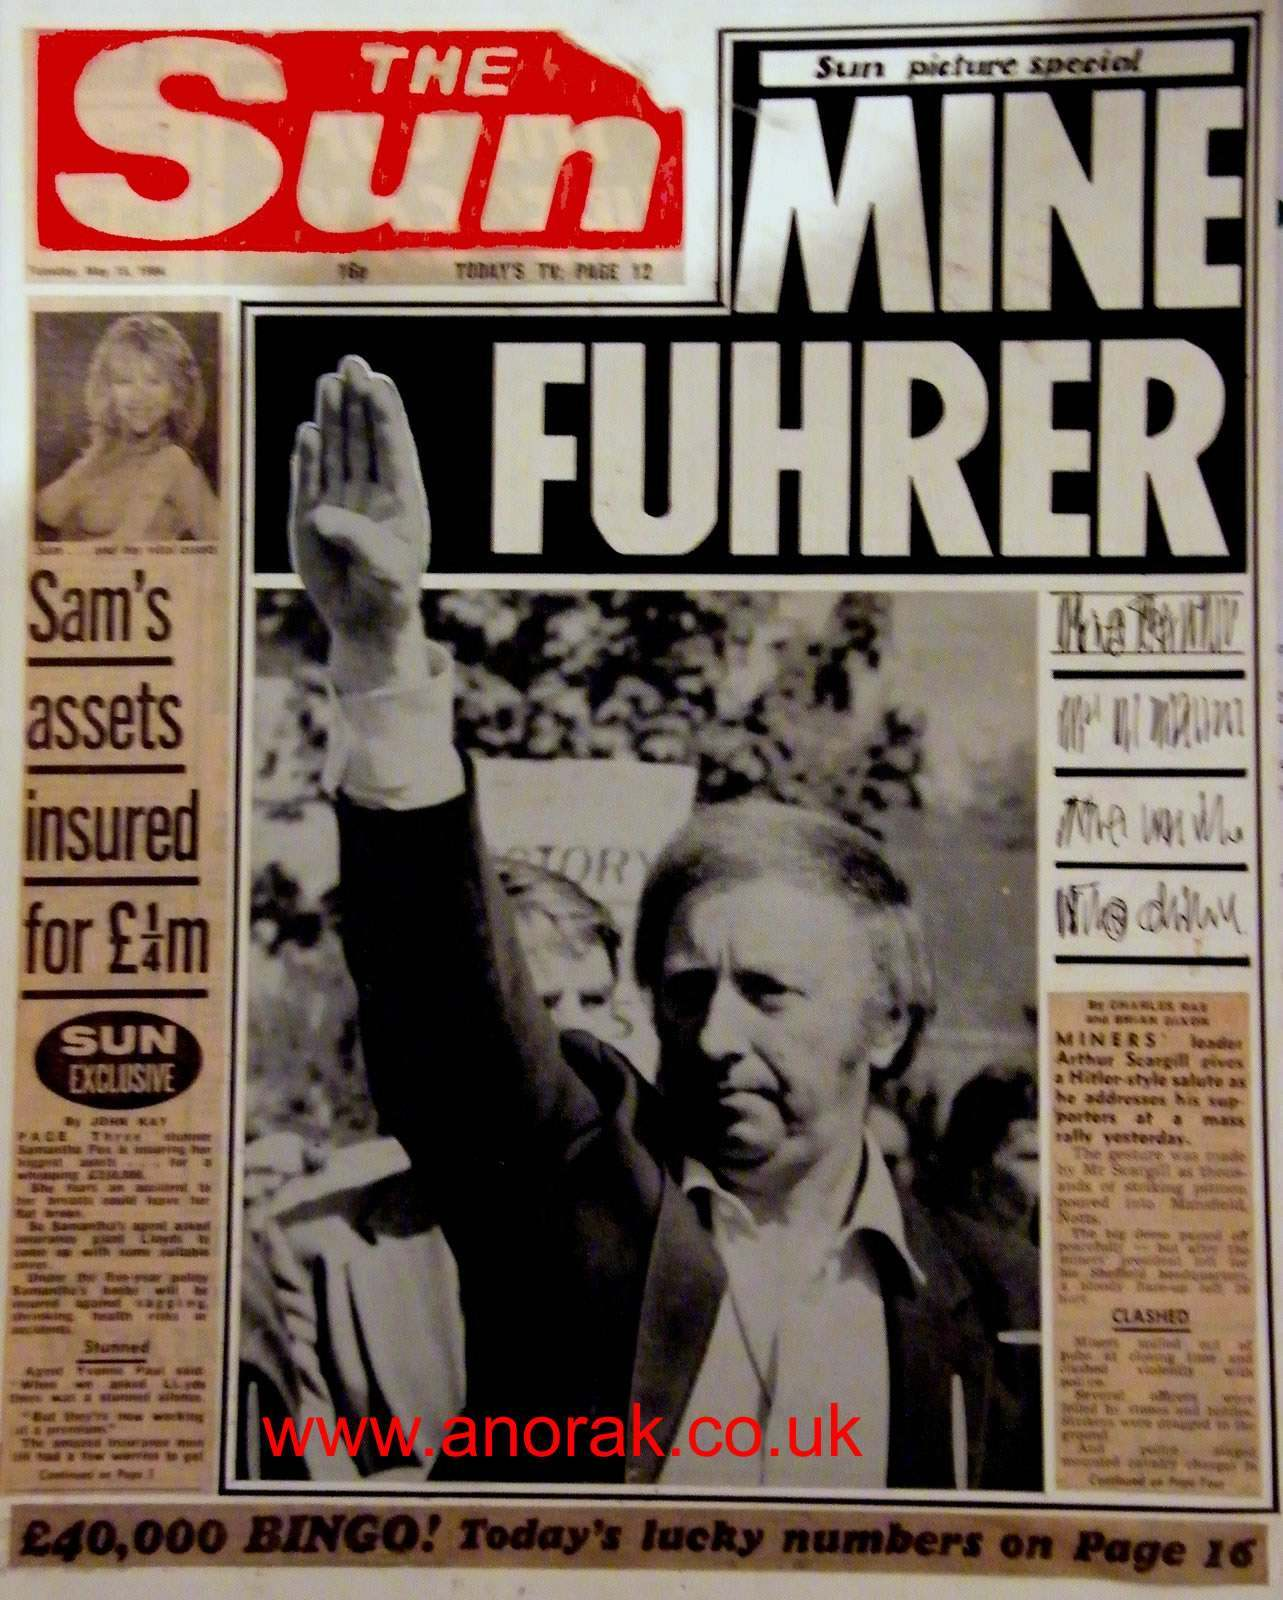 sun2 The Sun At 40: When Arthur Scargill Was Mein Fuhrer